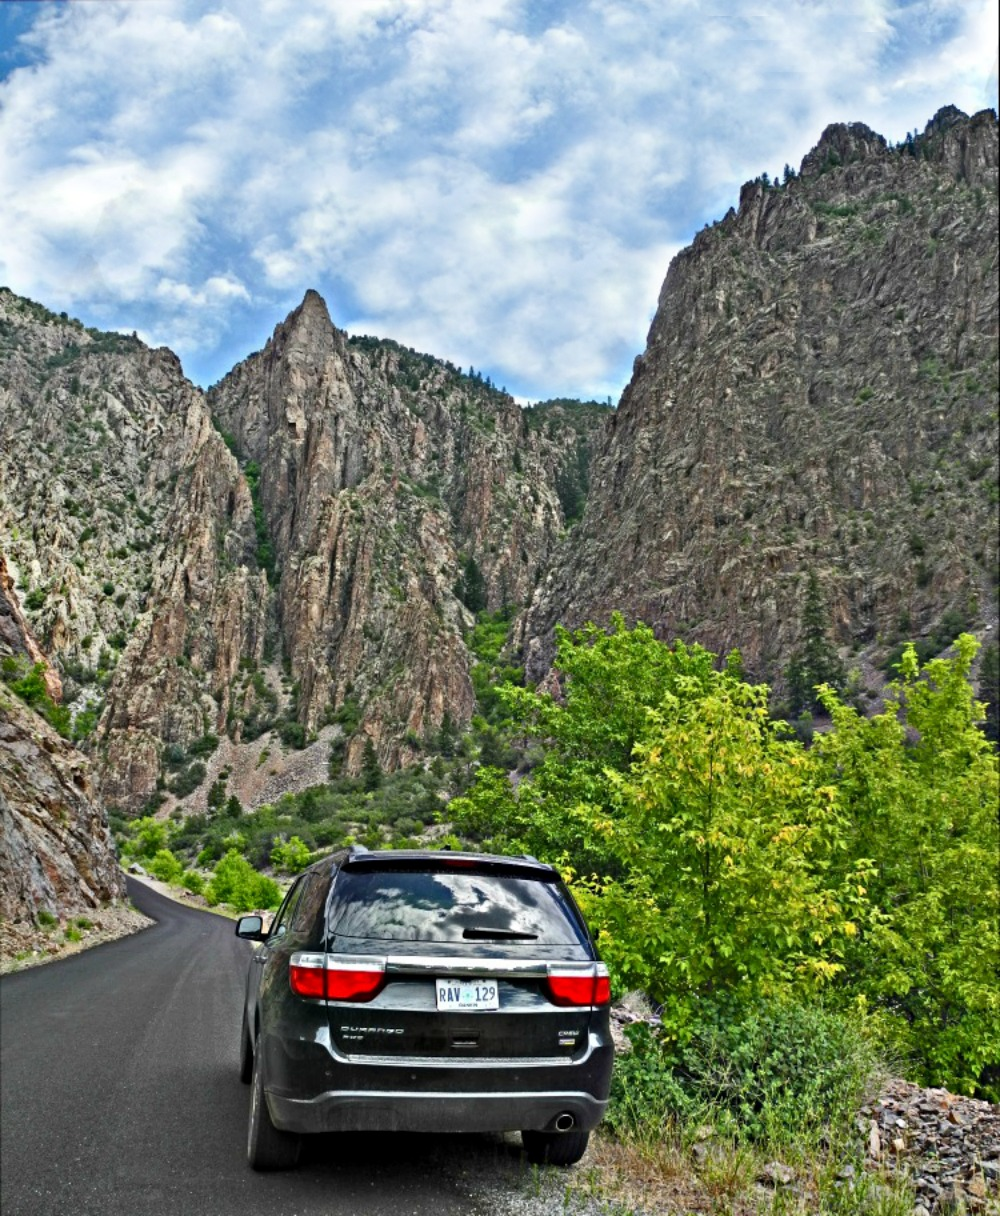 Reasons to visit America. Doge Durango in Black Canyon National Park.